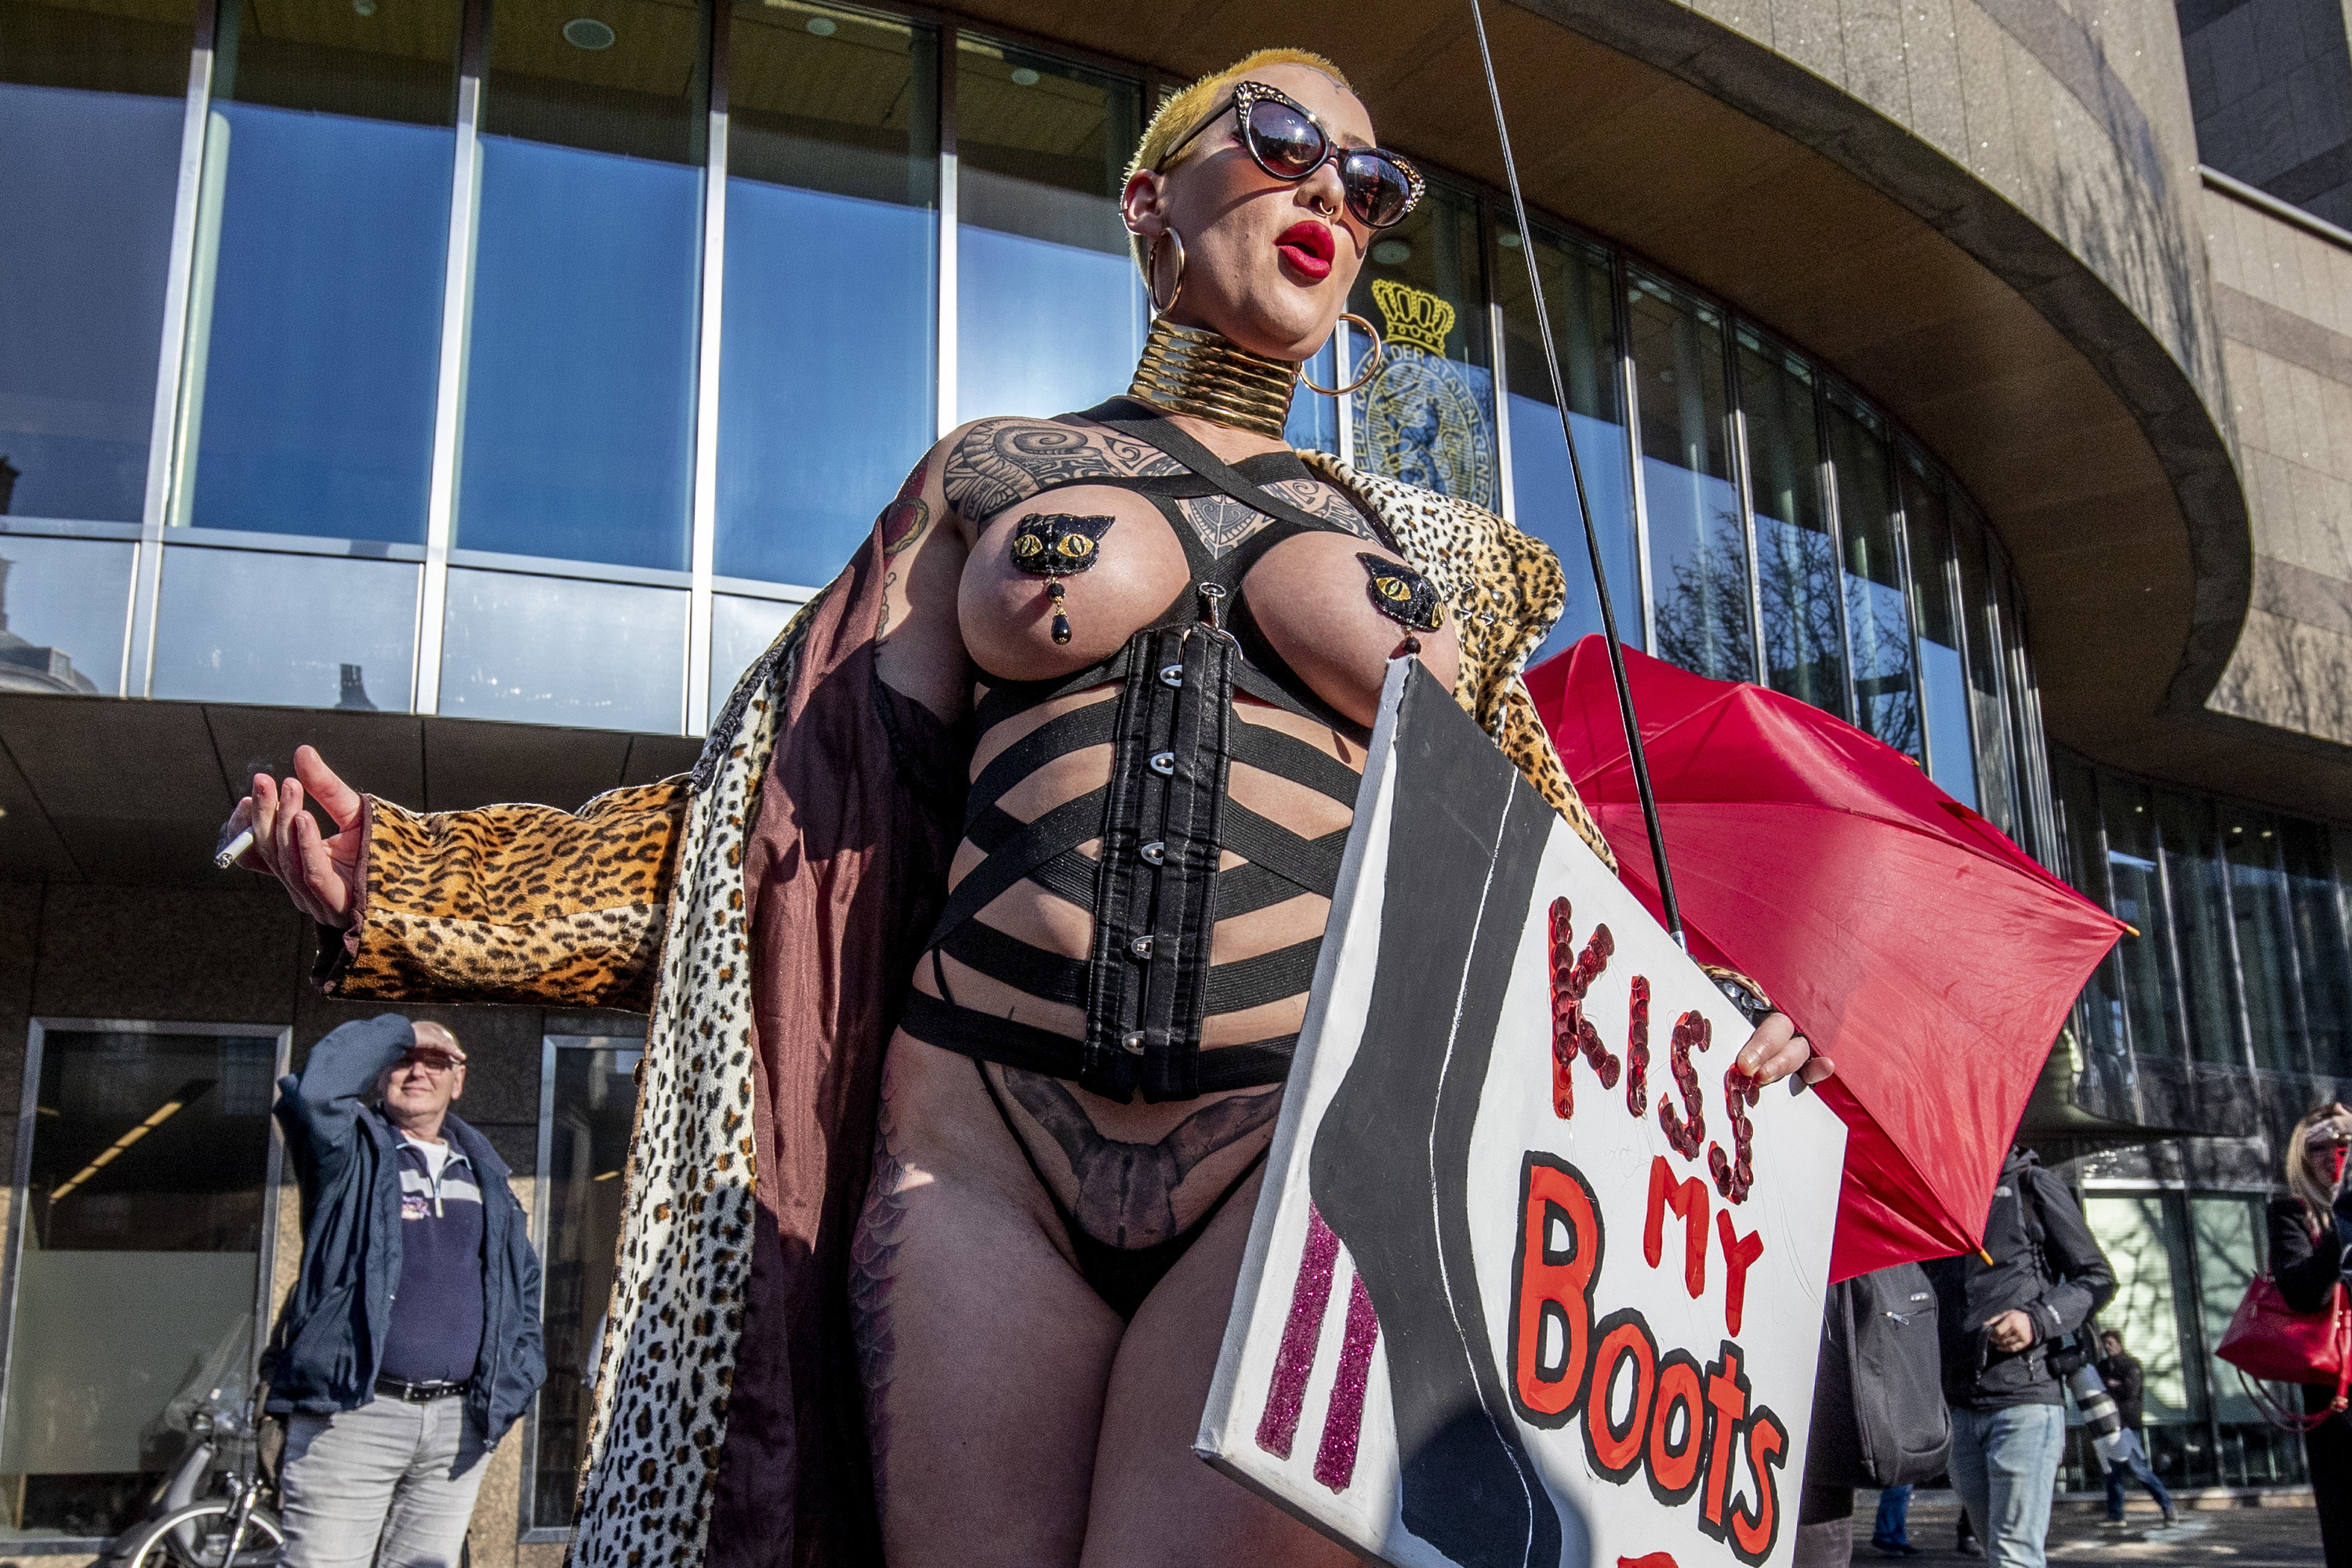 An image of a woman at a march for sex worker's rights